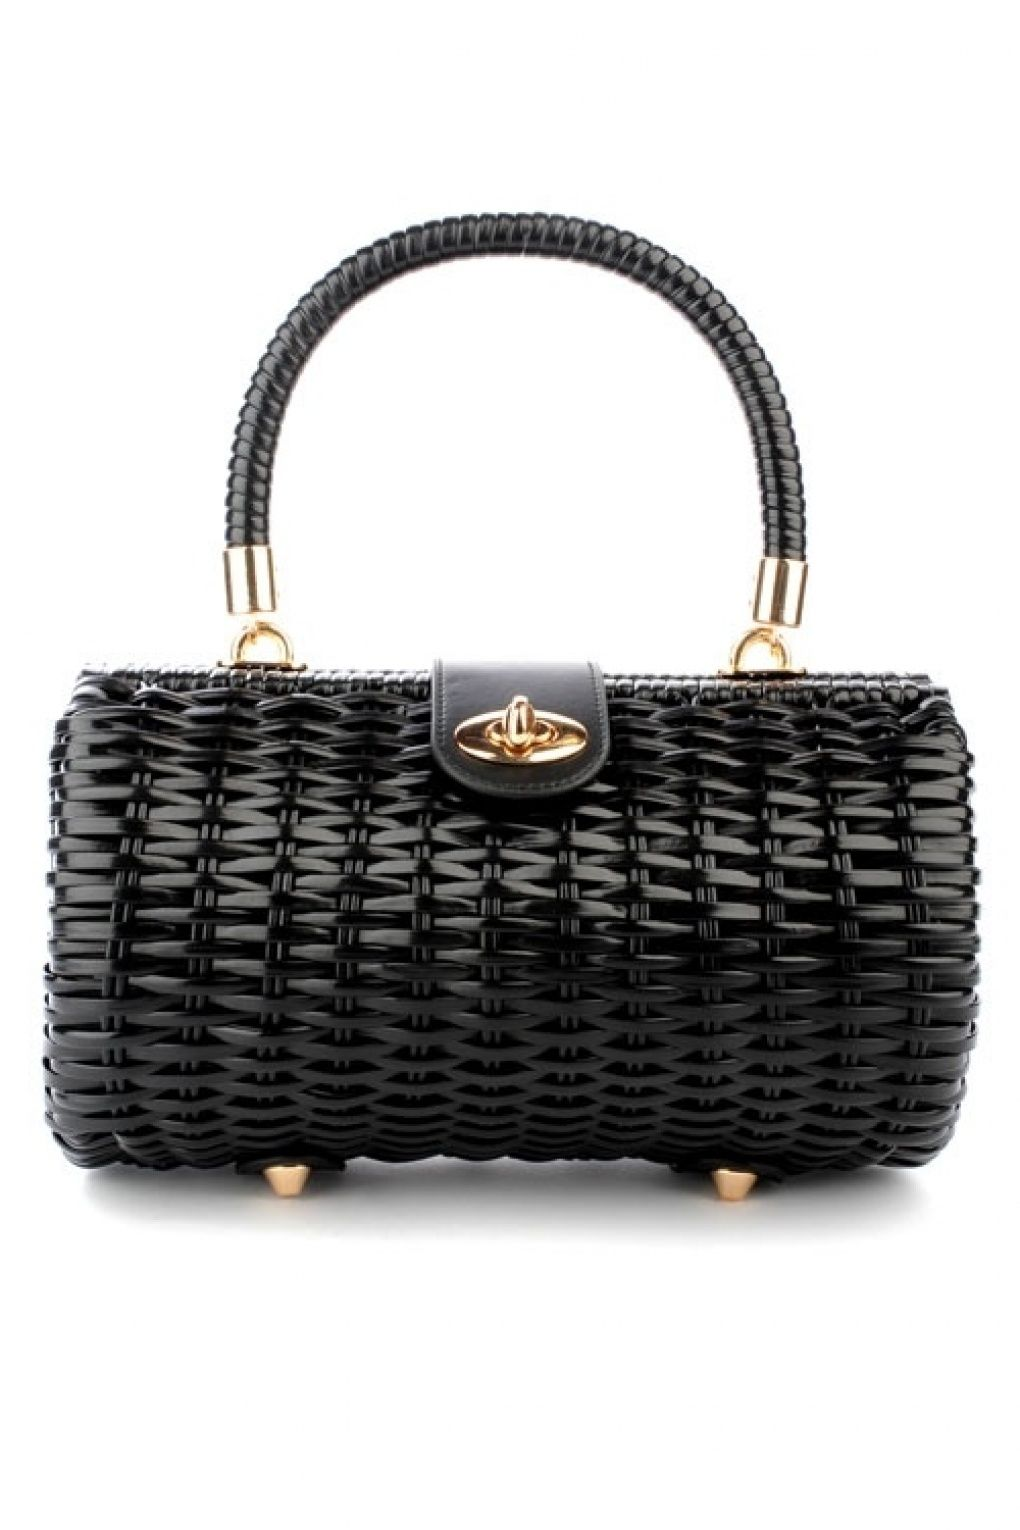 Pinup Couture 50s Vintage Wicker Baguette Purse In Black